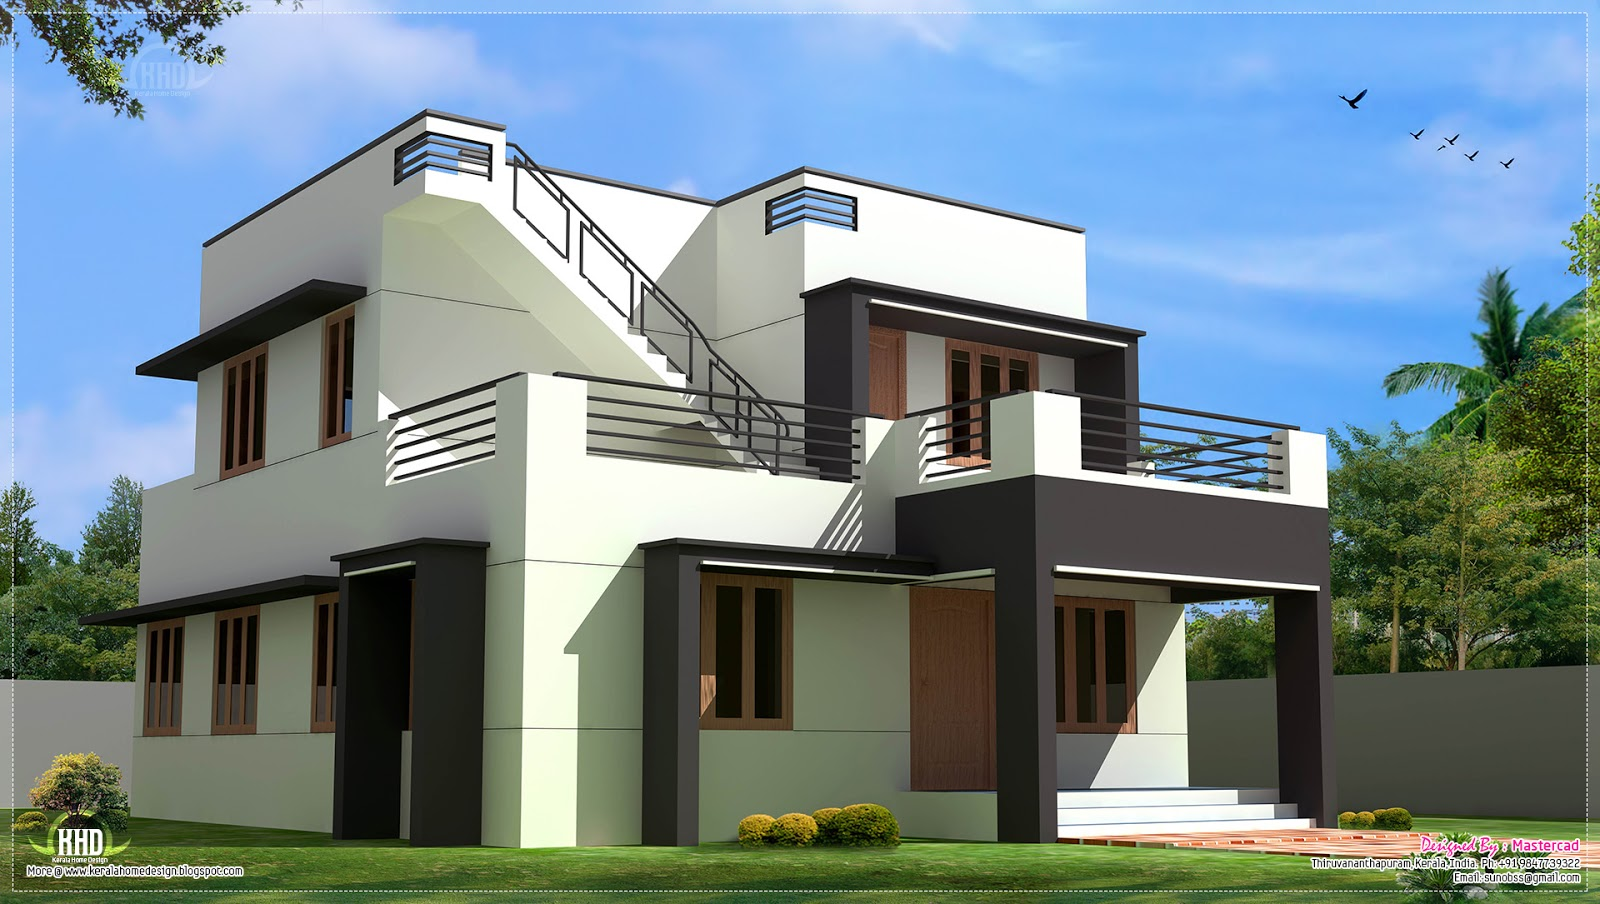 Modern house design in 1700 kerala home design for Best house designs